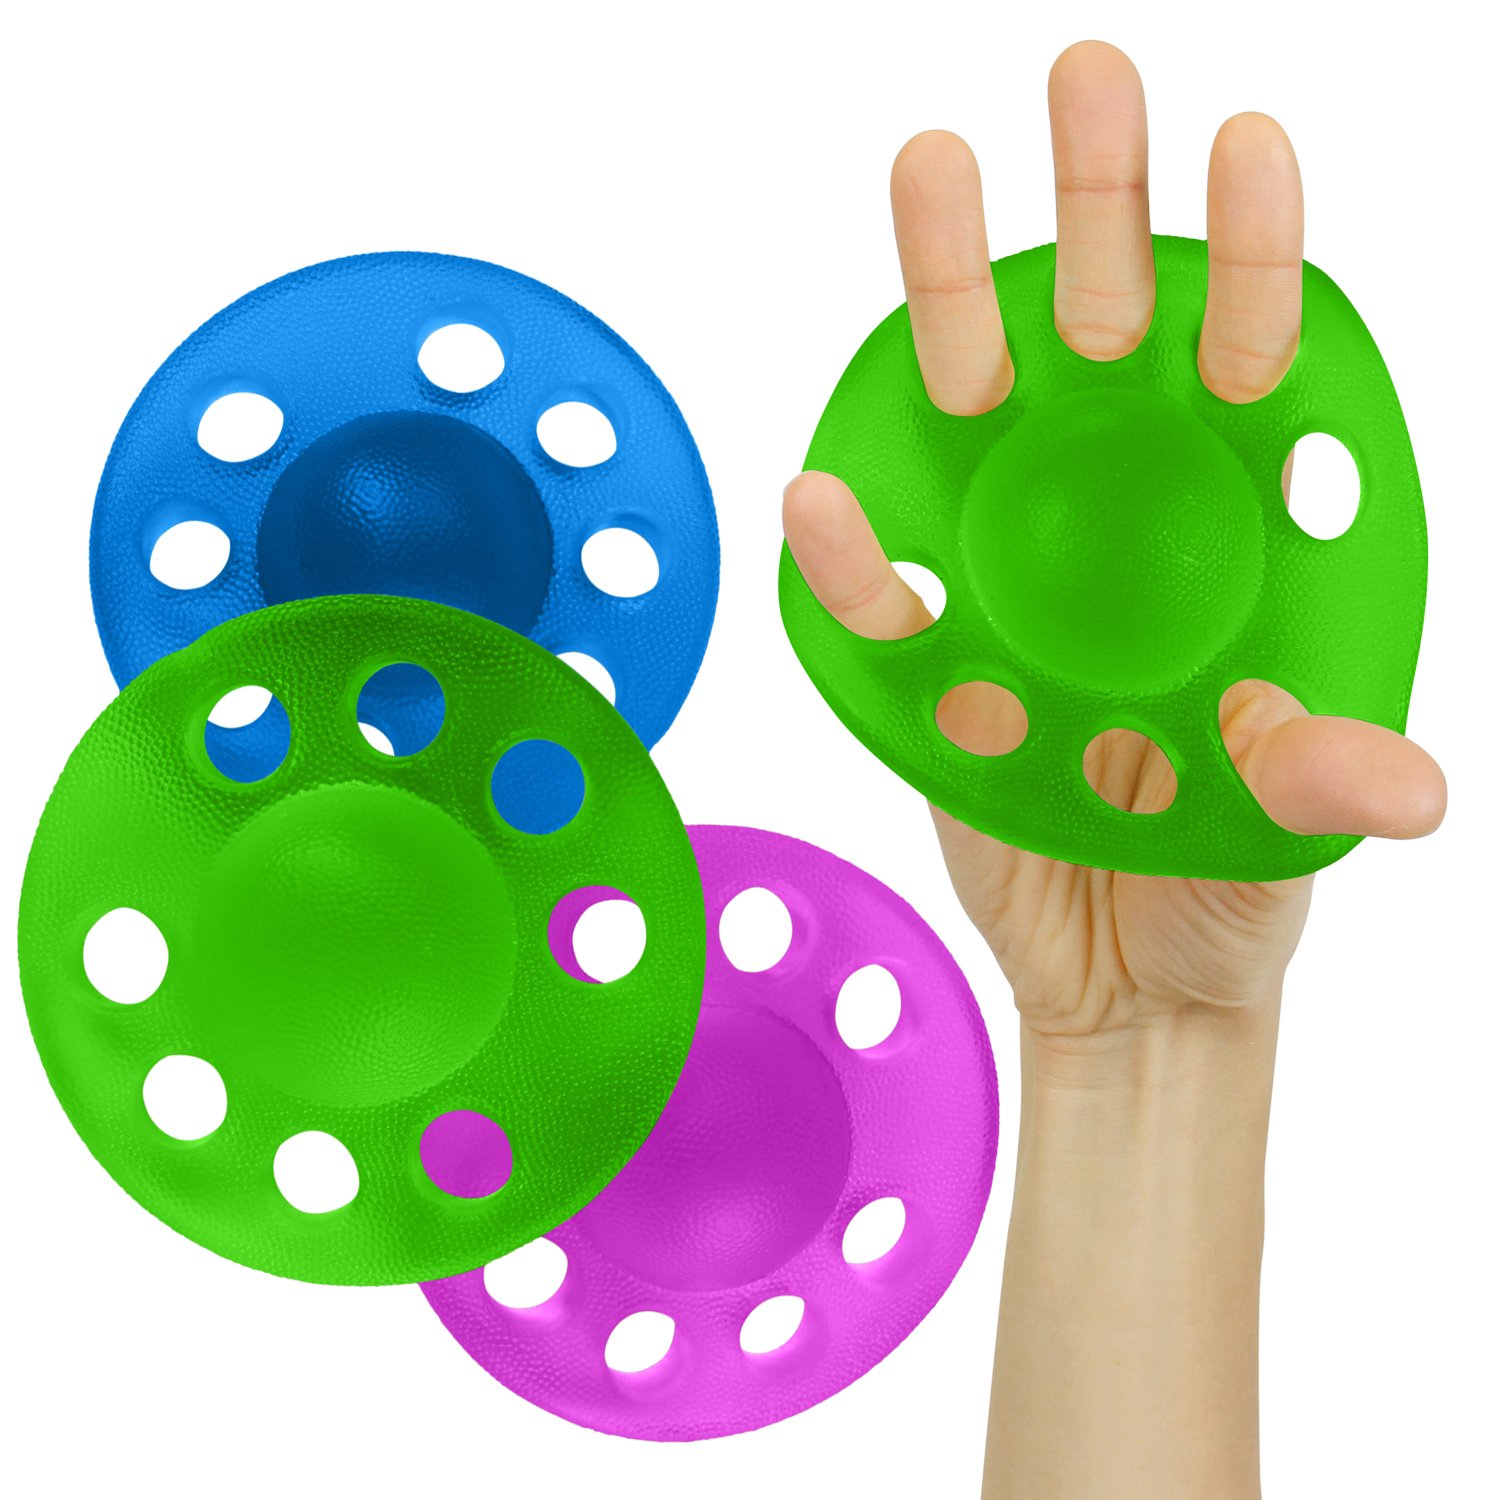 Hand Exercise Balls by Vive - Therapy Finger Extension Strengthener - Grip Exerciser Set for Arthritis, Carpal Tunnel, Forearm Strength, Squeeze Egg Kit, and Muscle Fitness - Resistance Strengthening